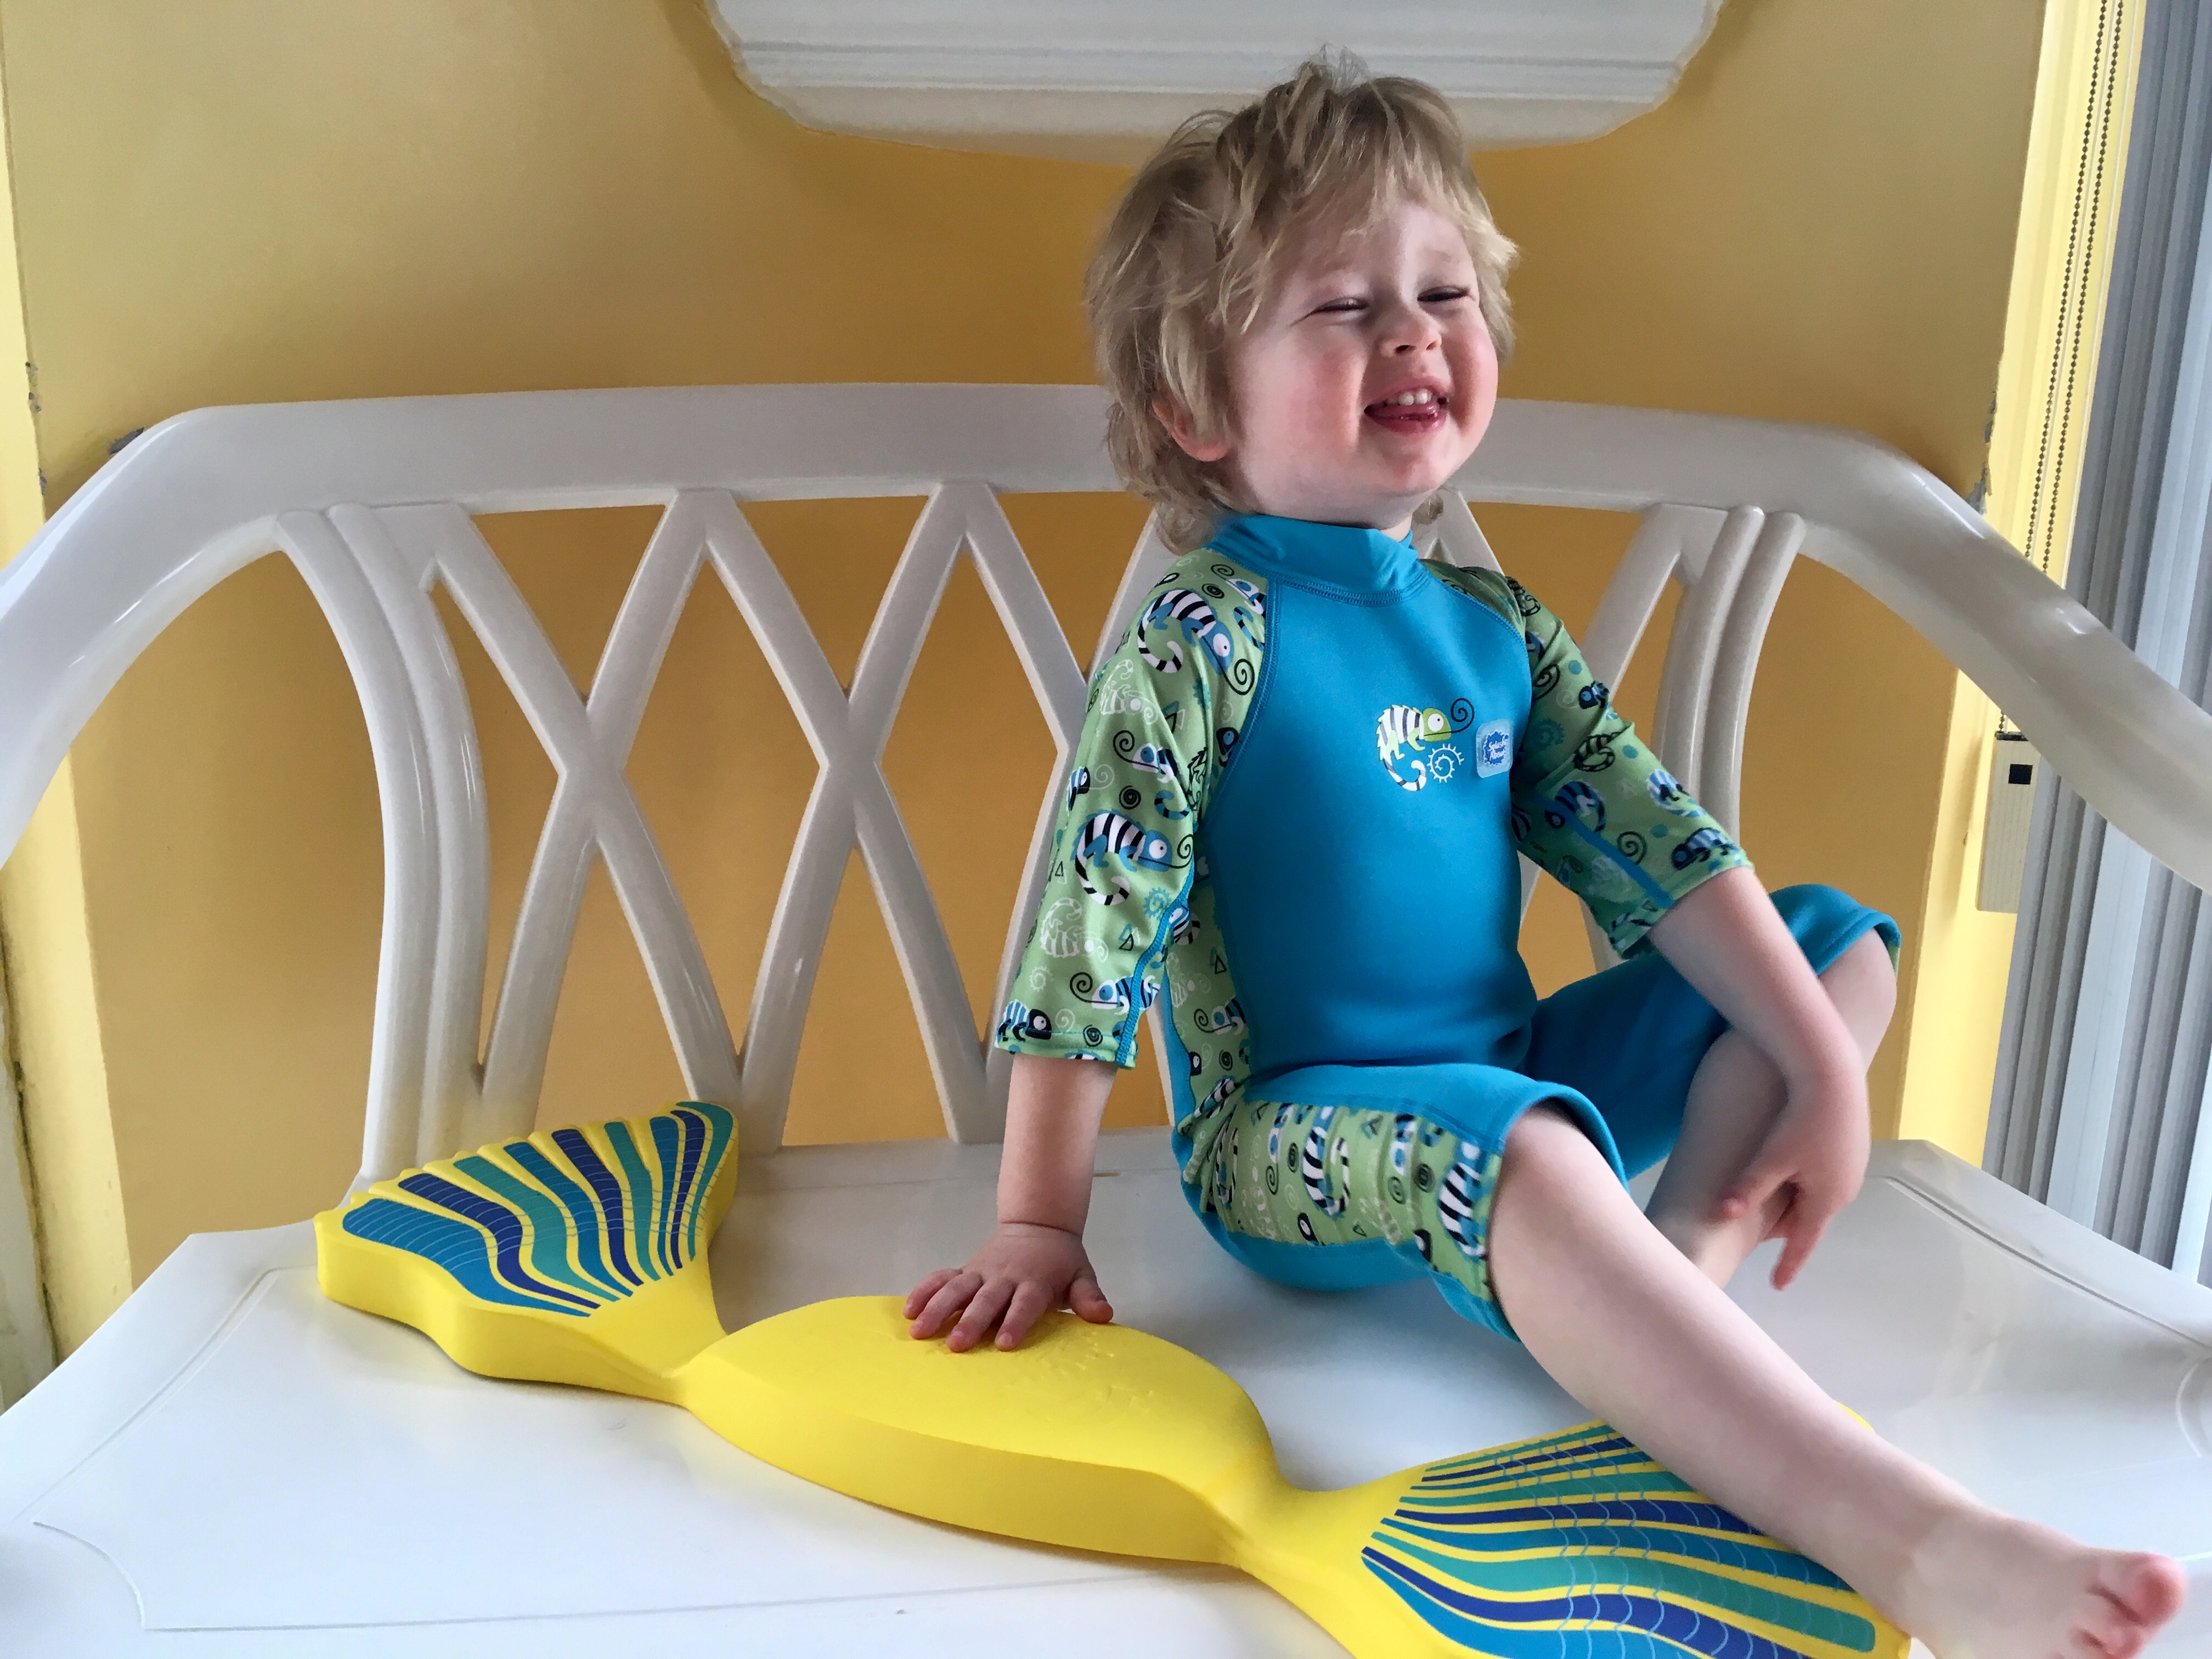 The benefits of learning to swim at a young age. Lucas sat in a bench laughing wearing a blue and green all in one sun suit